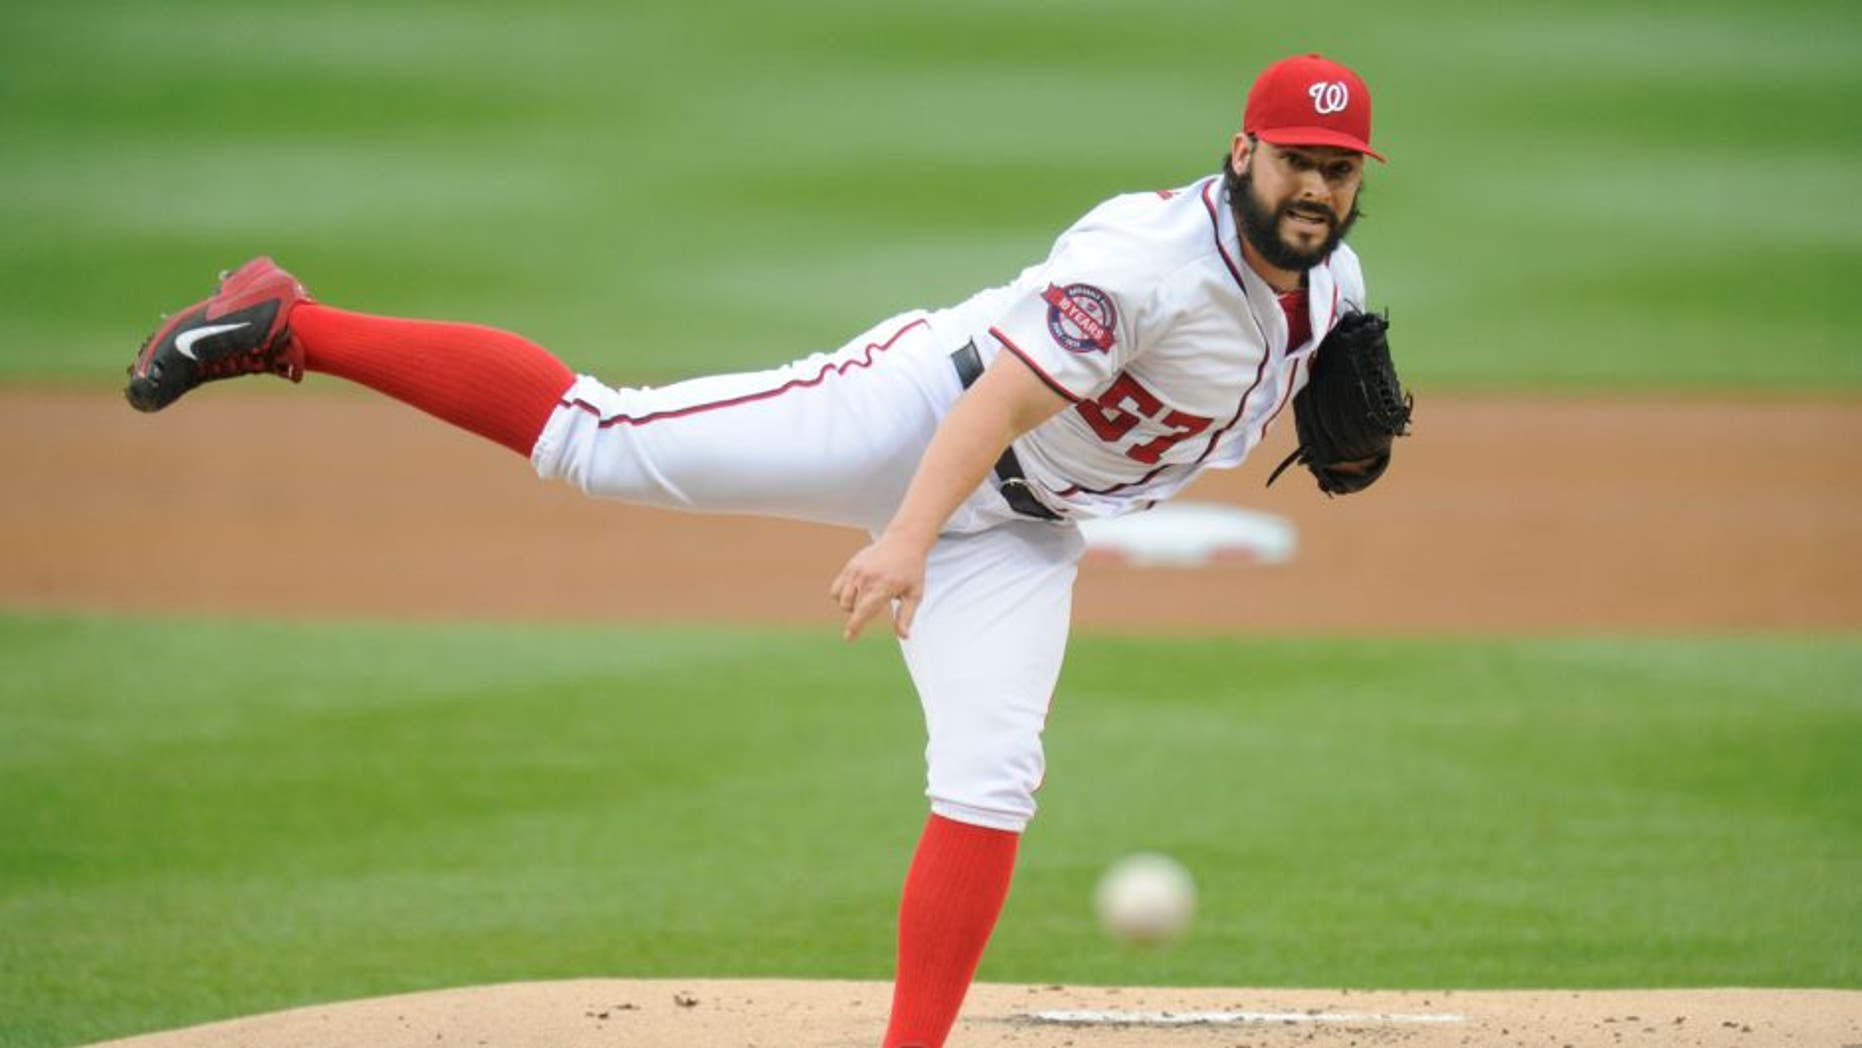 WASHINGTON, DC - JUNE 05: Tanner Roark #57 of the Washington Nationals pitches during a baseball game against the Chicago Cubs at Nationals Park on June 5, 2015 in Washington, DC. The Nationals won 7-5. (Photo by Mitchell Layton/Getty Images)